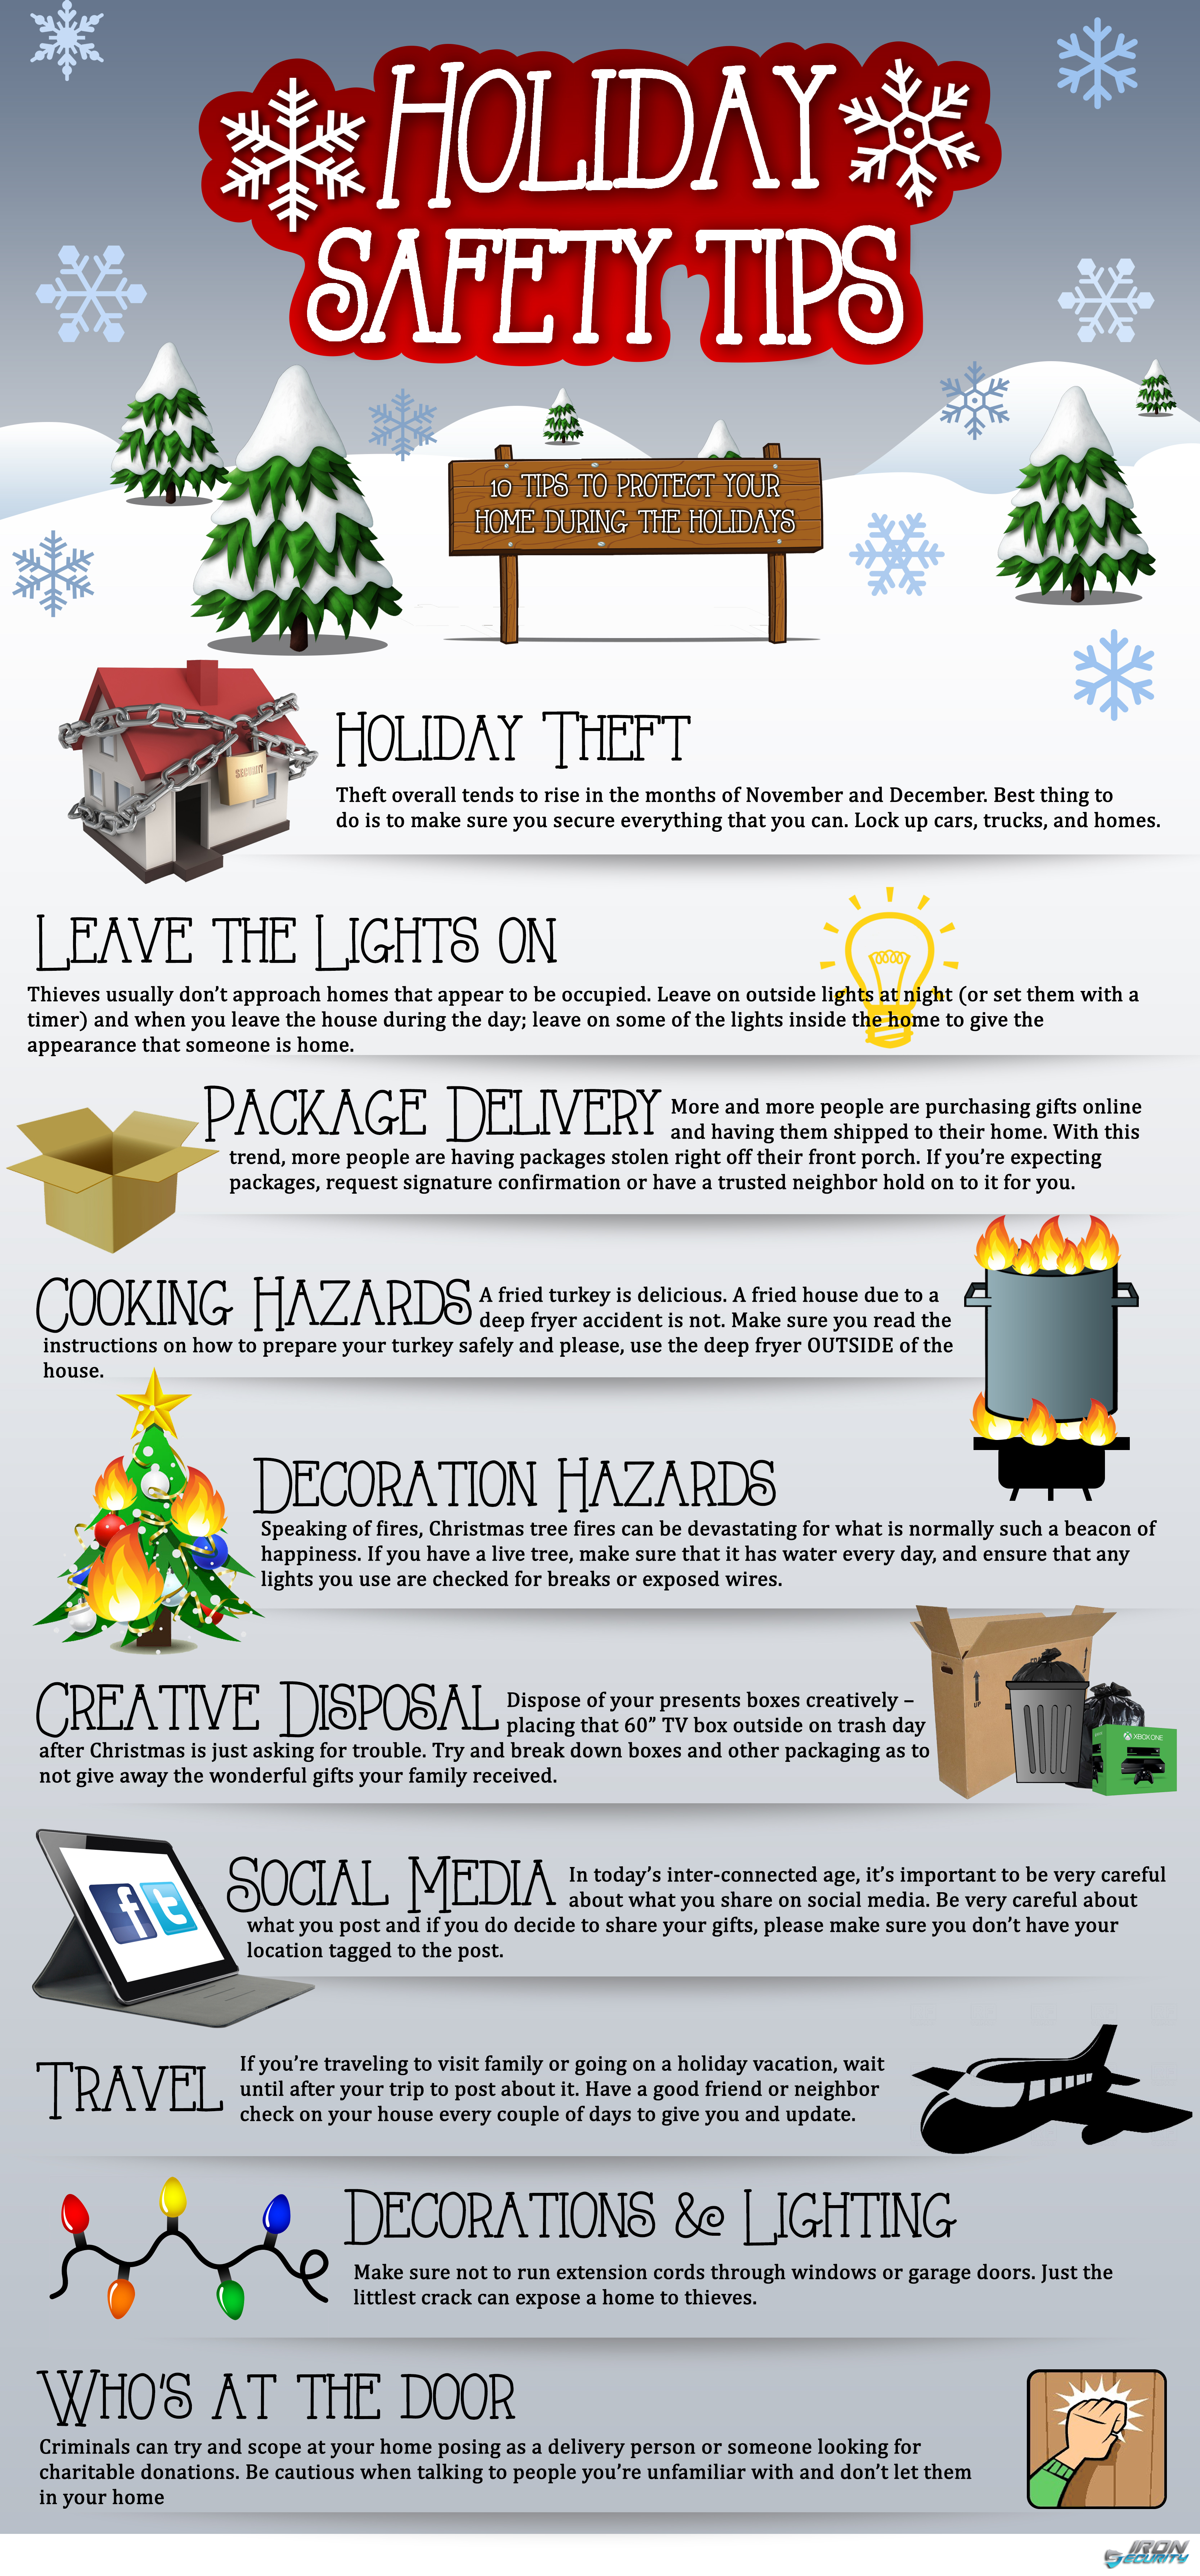 Holiday Safety Tips Infographic